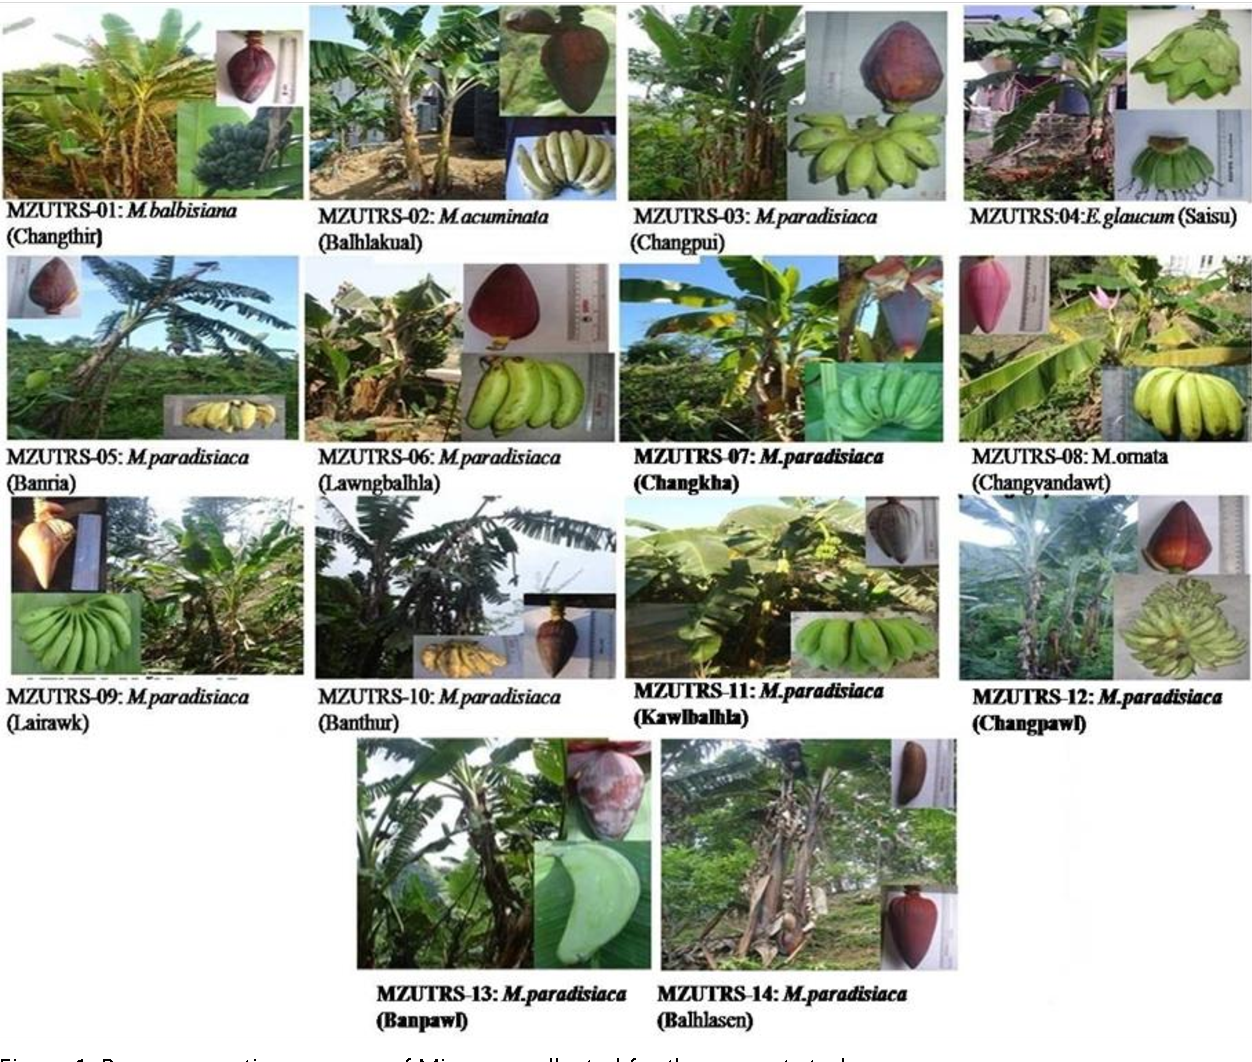 Pdf Genome Characterization Of Banana Genetic Resources Of Mizoram India Semantic Scholar